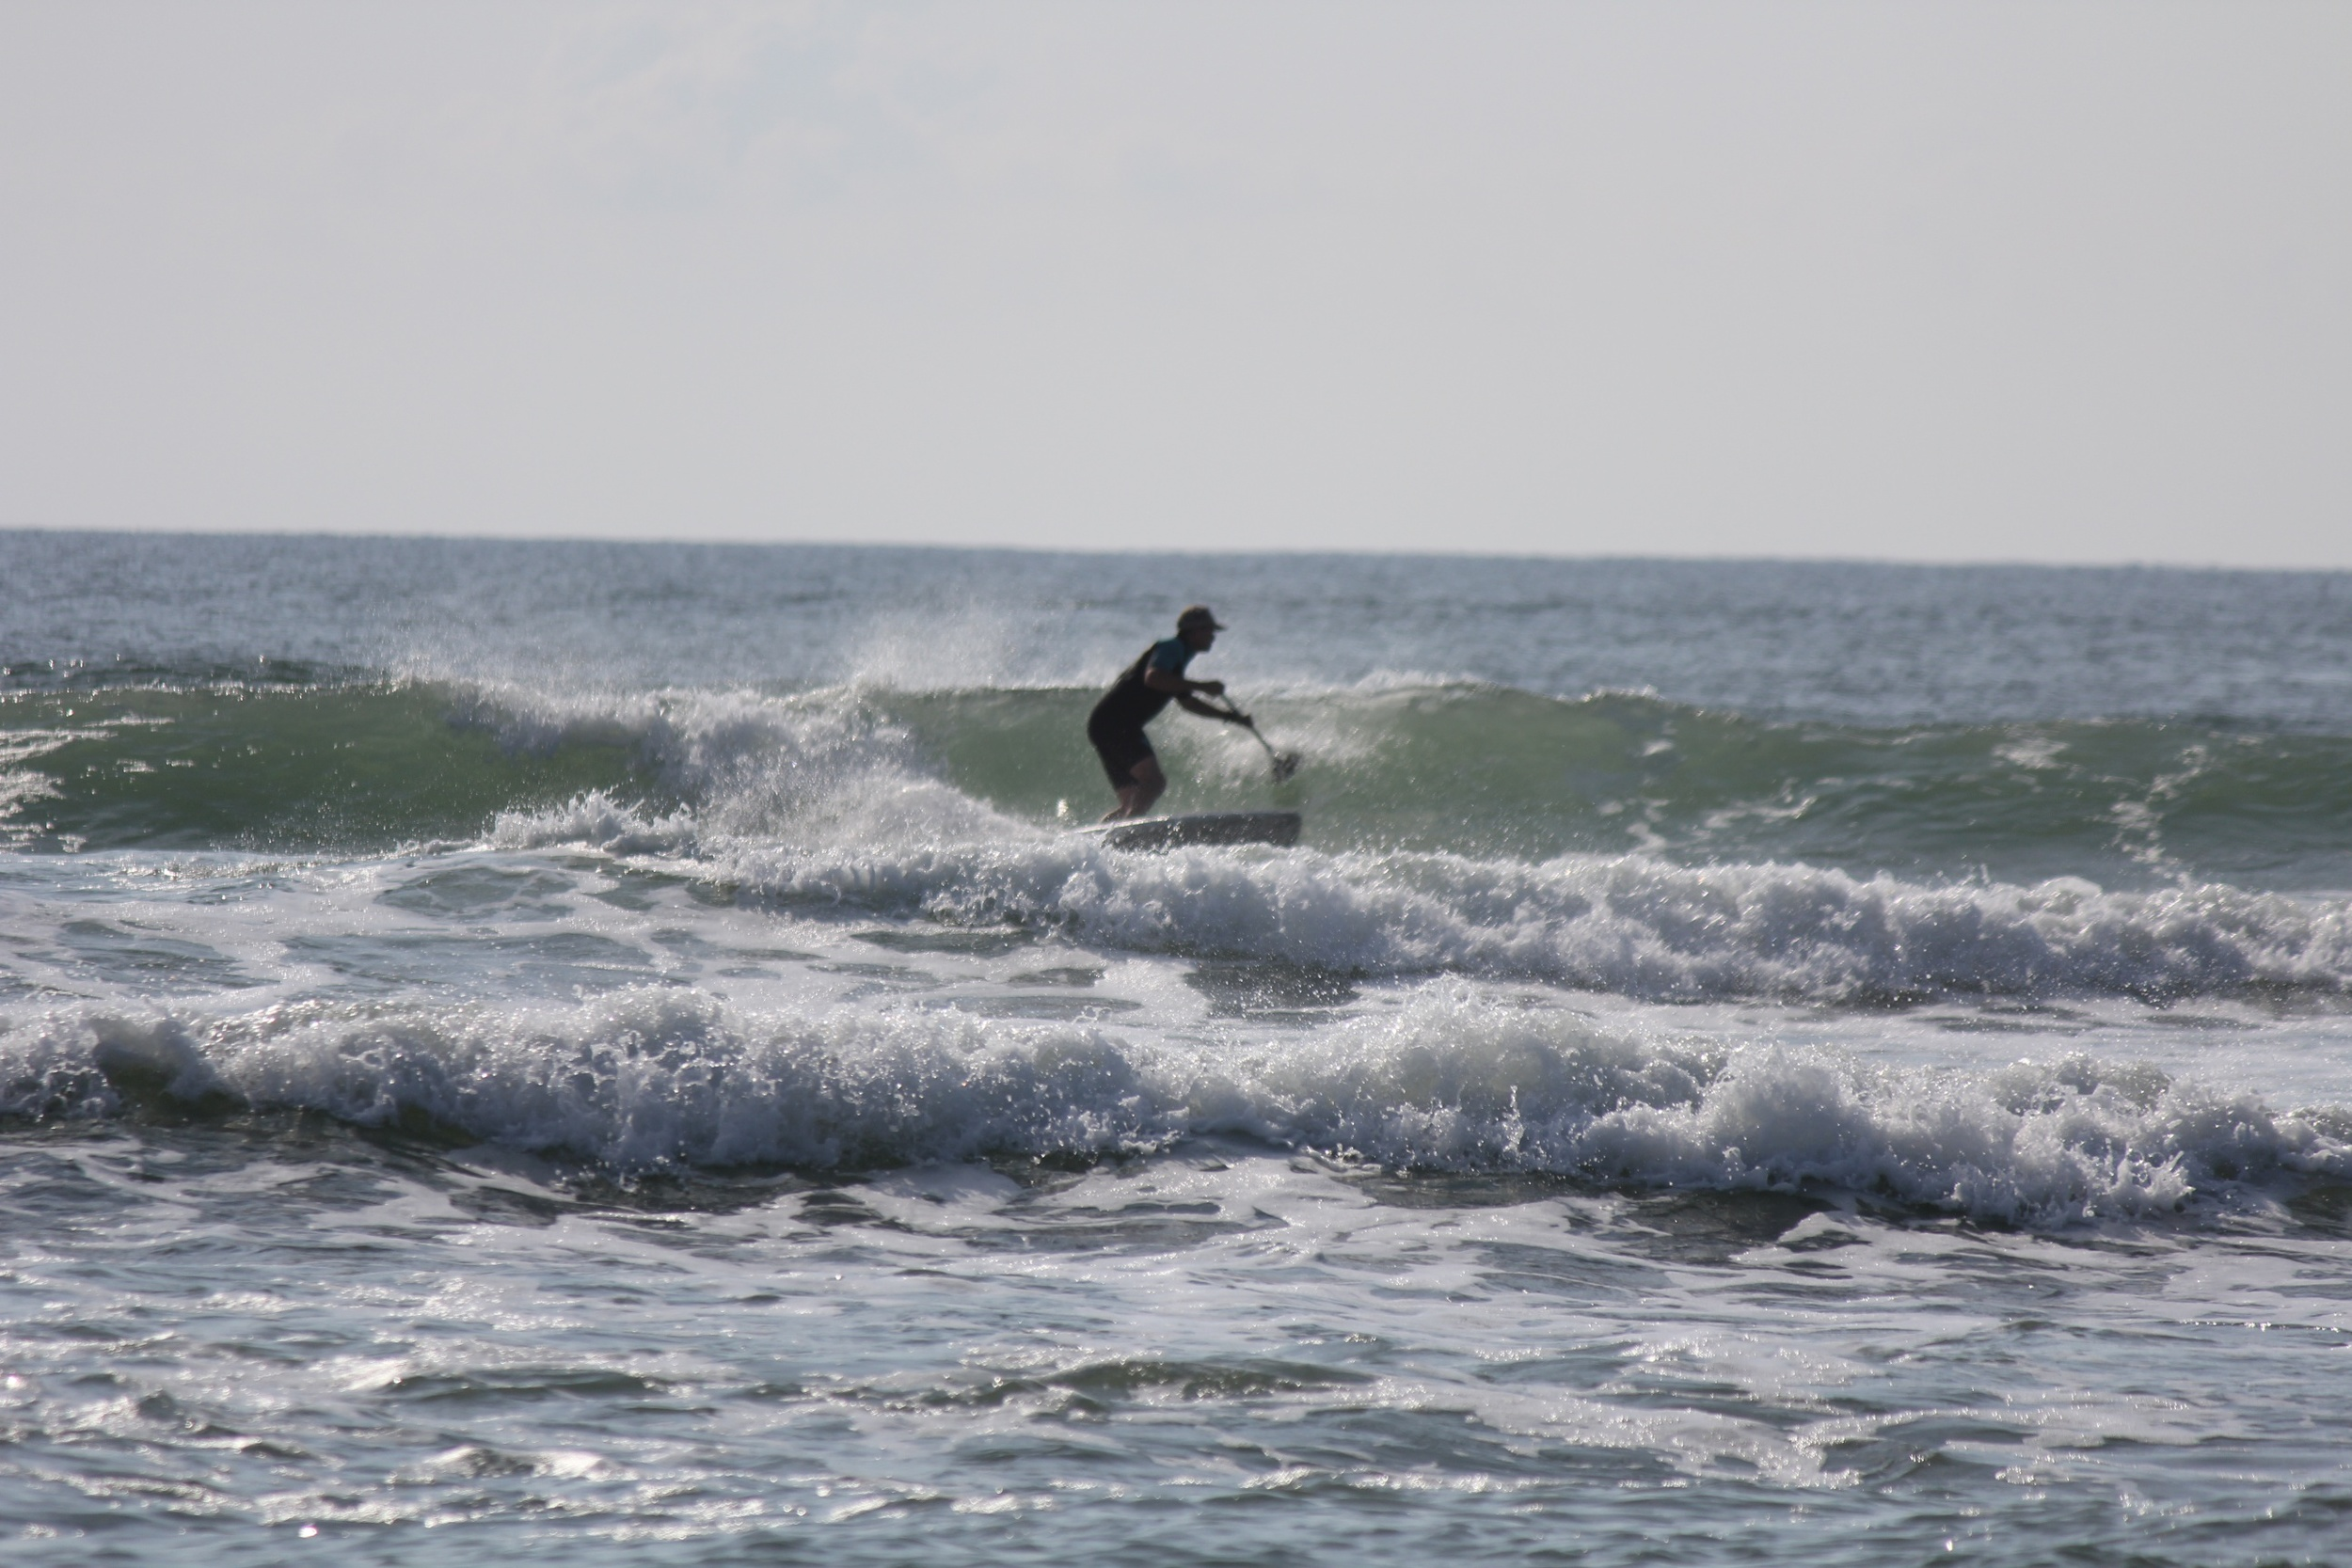 Z on his new 7'8 Accelerator